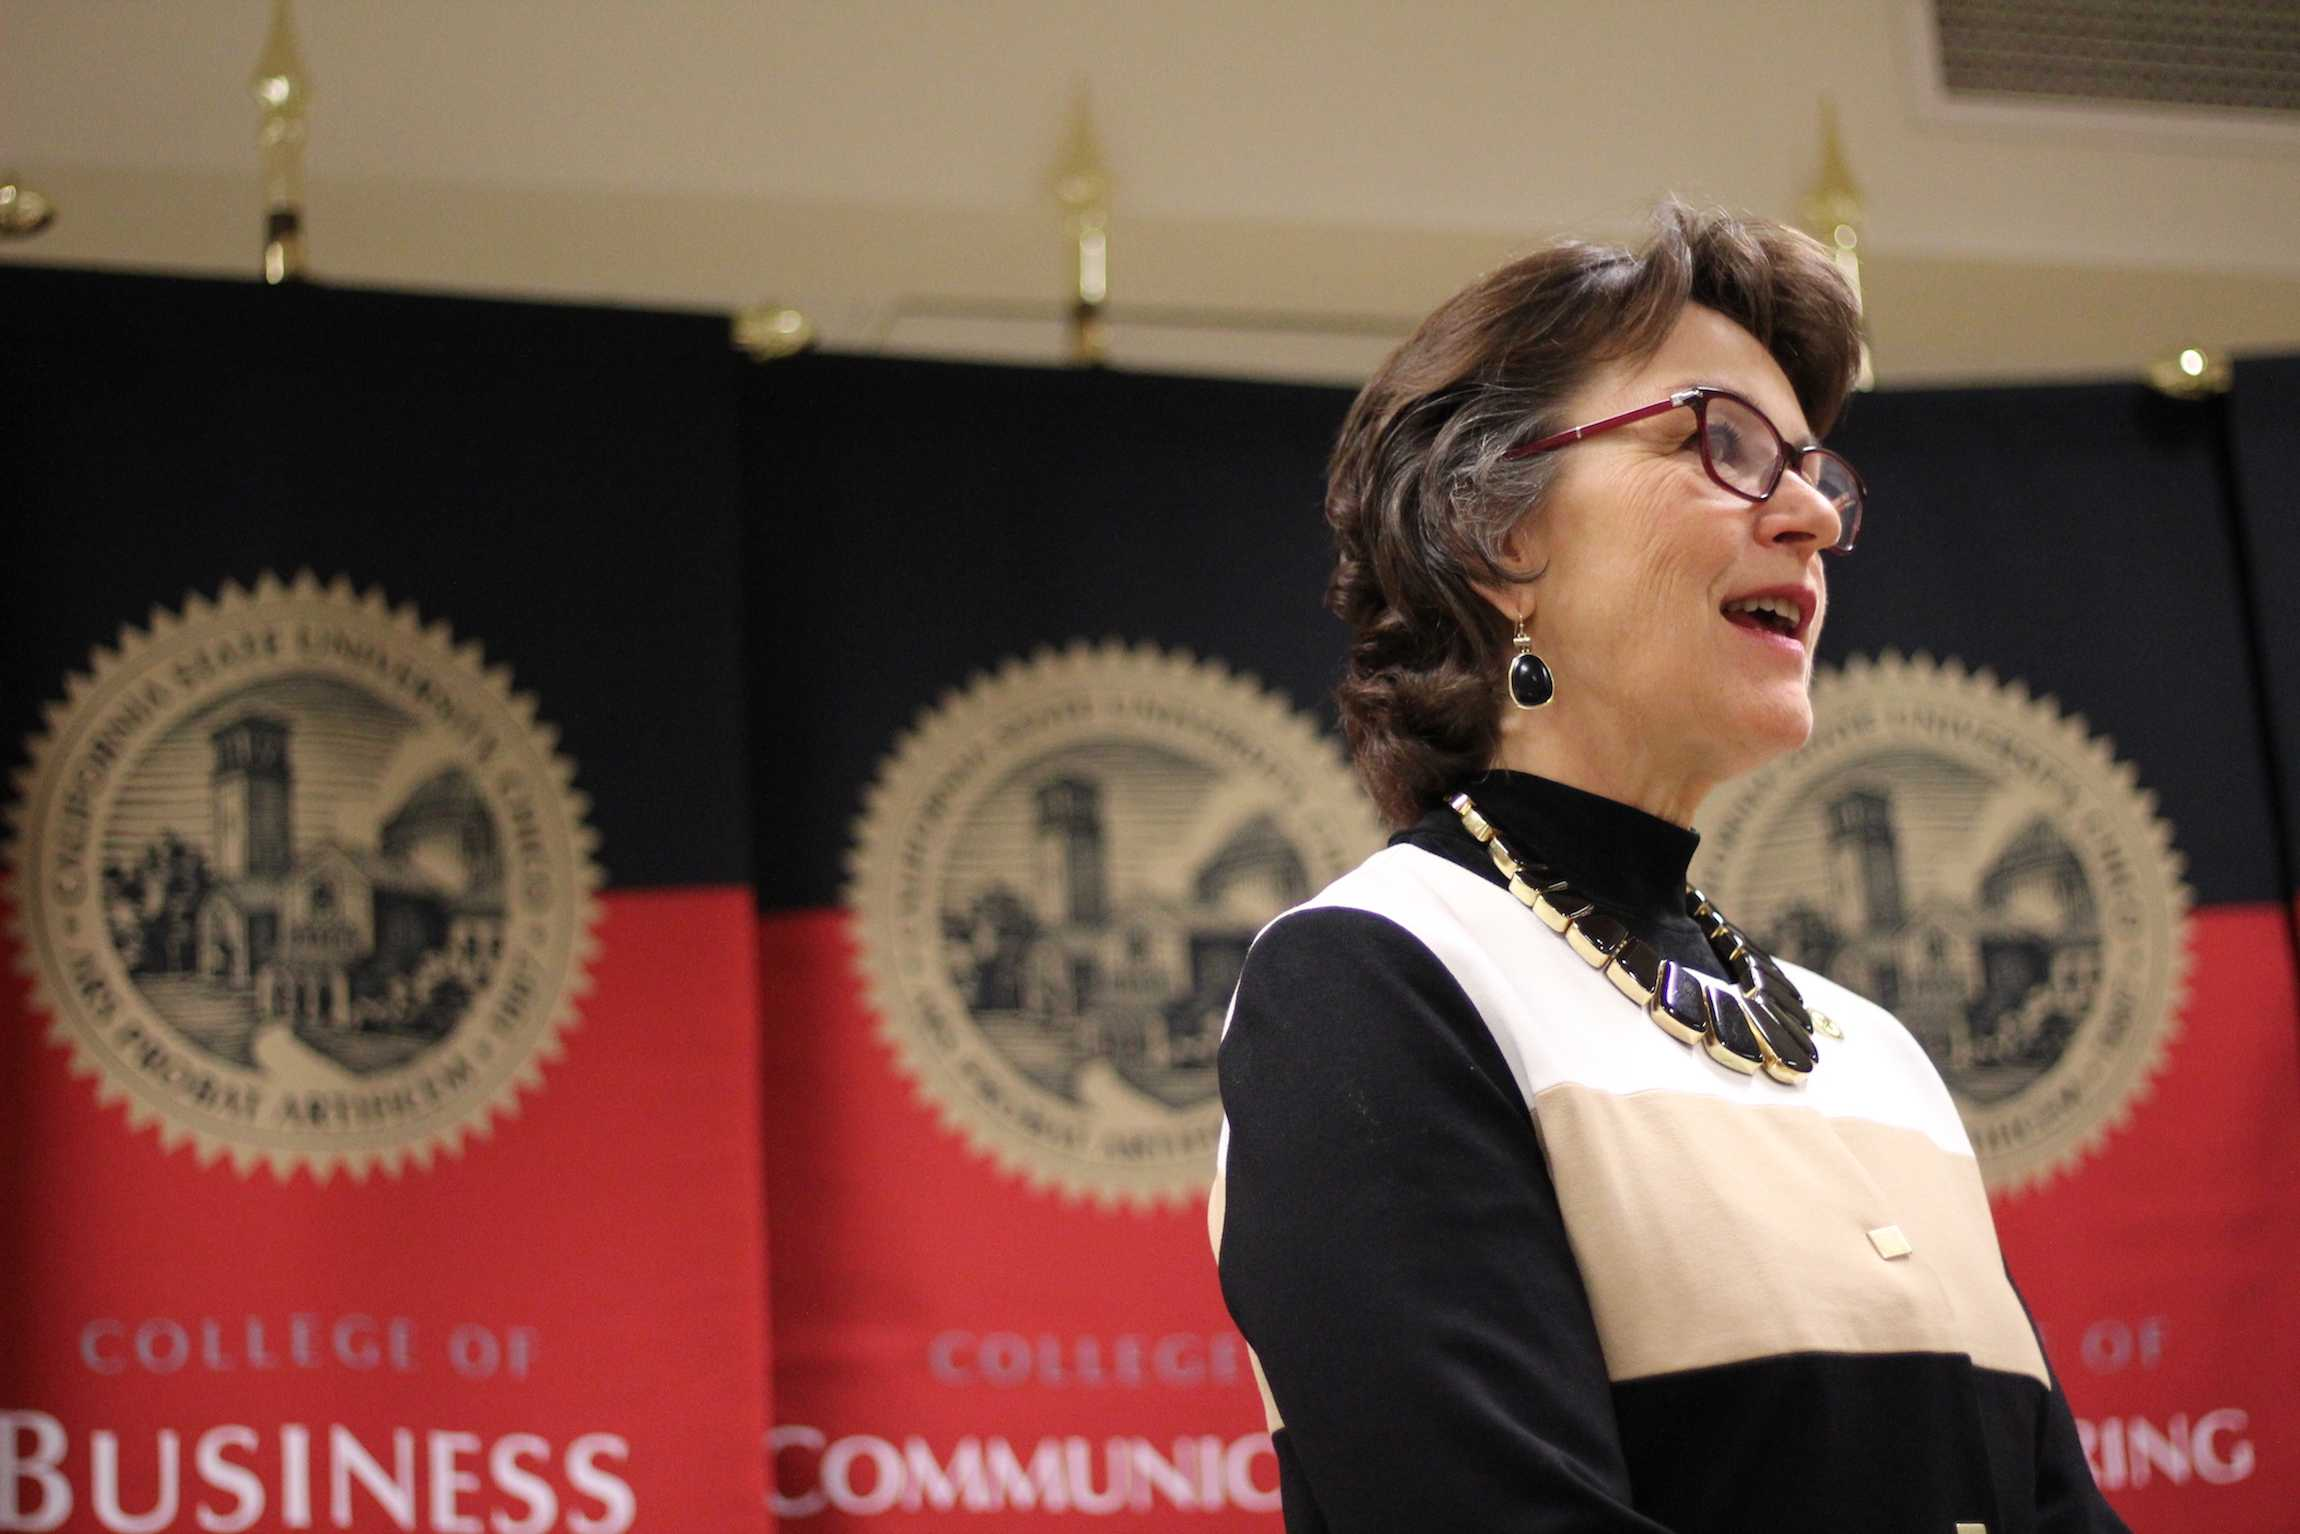 President Hutchinson speaks at a press conference before her investiture ceremony on March 2. Photo credit: Ben Hacker